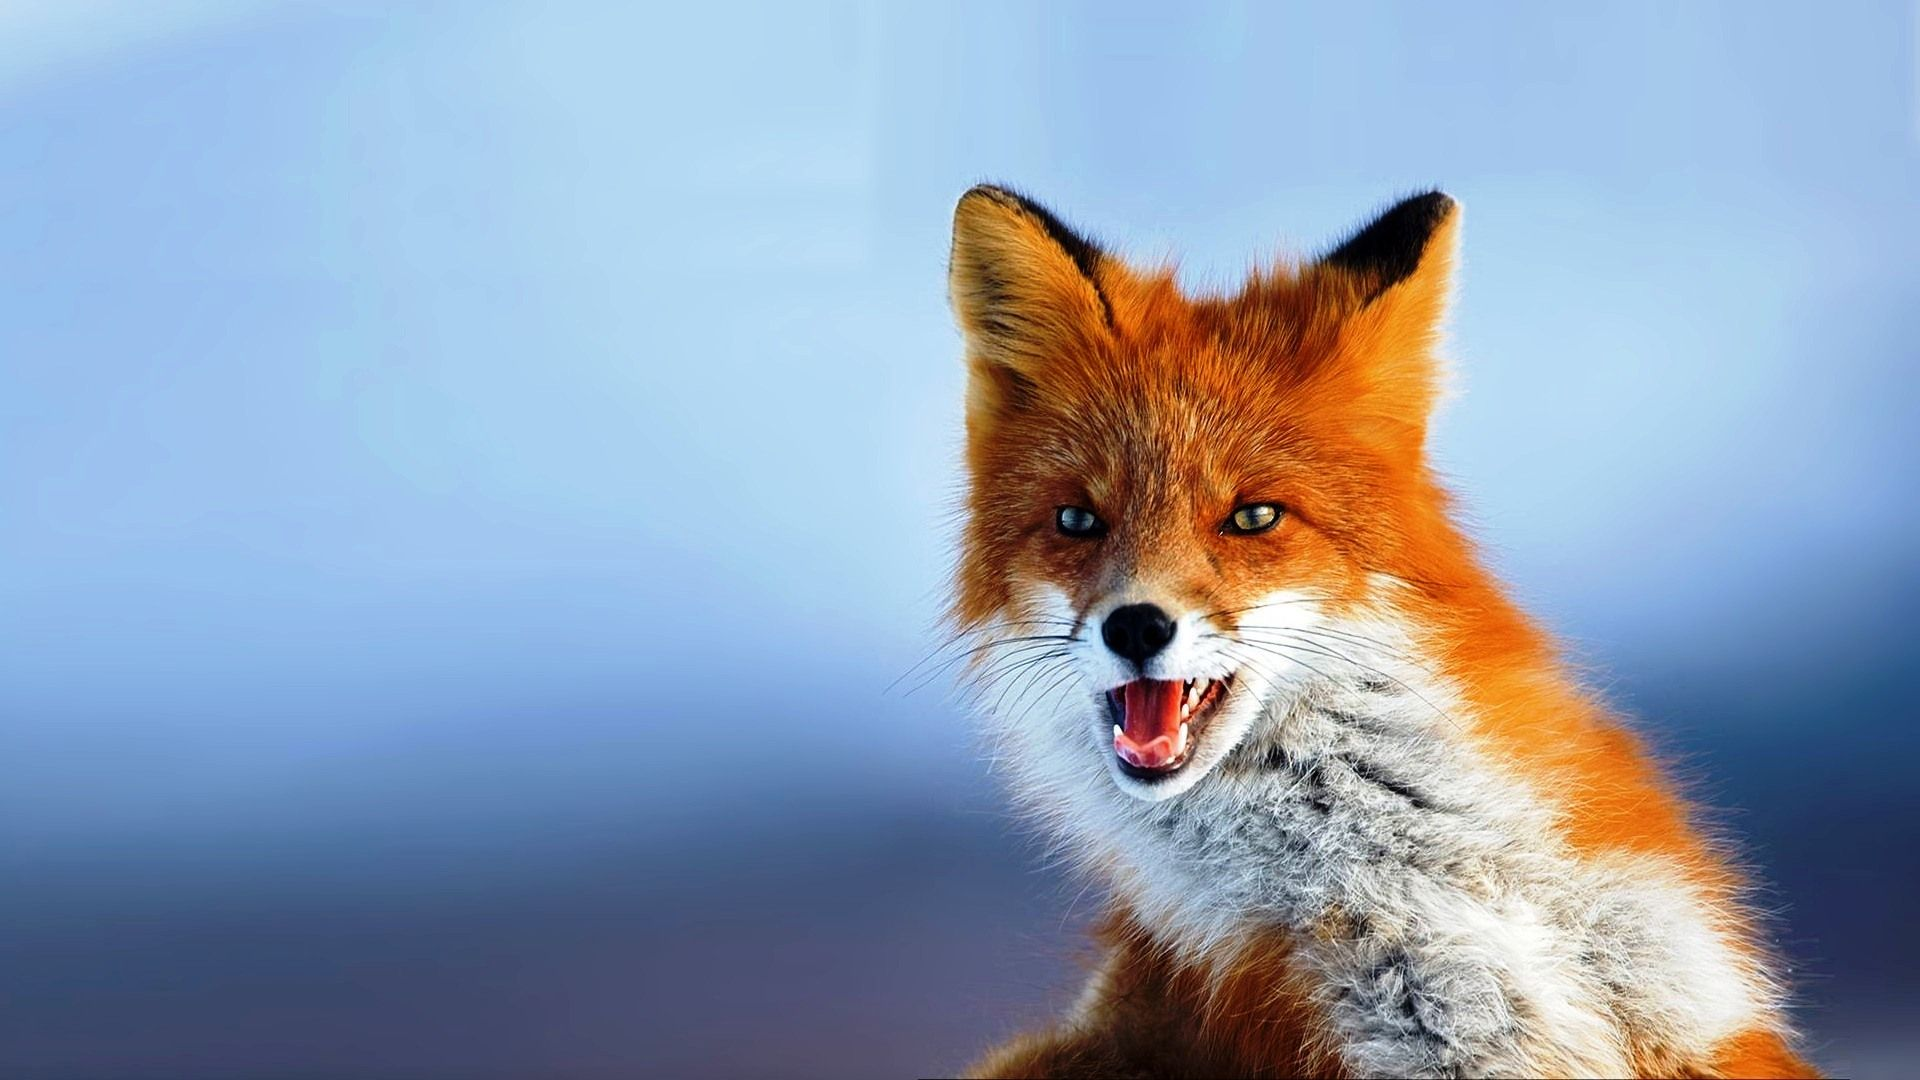 Fox HD Wallpapers HD Wallpapers Fit Pet fox, Animals